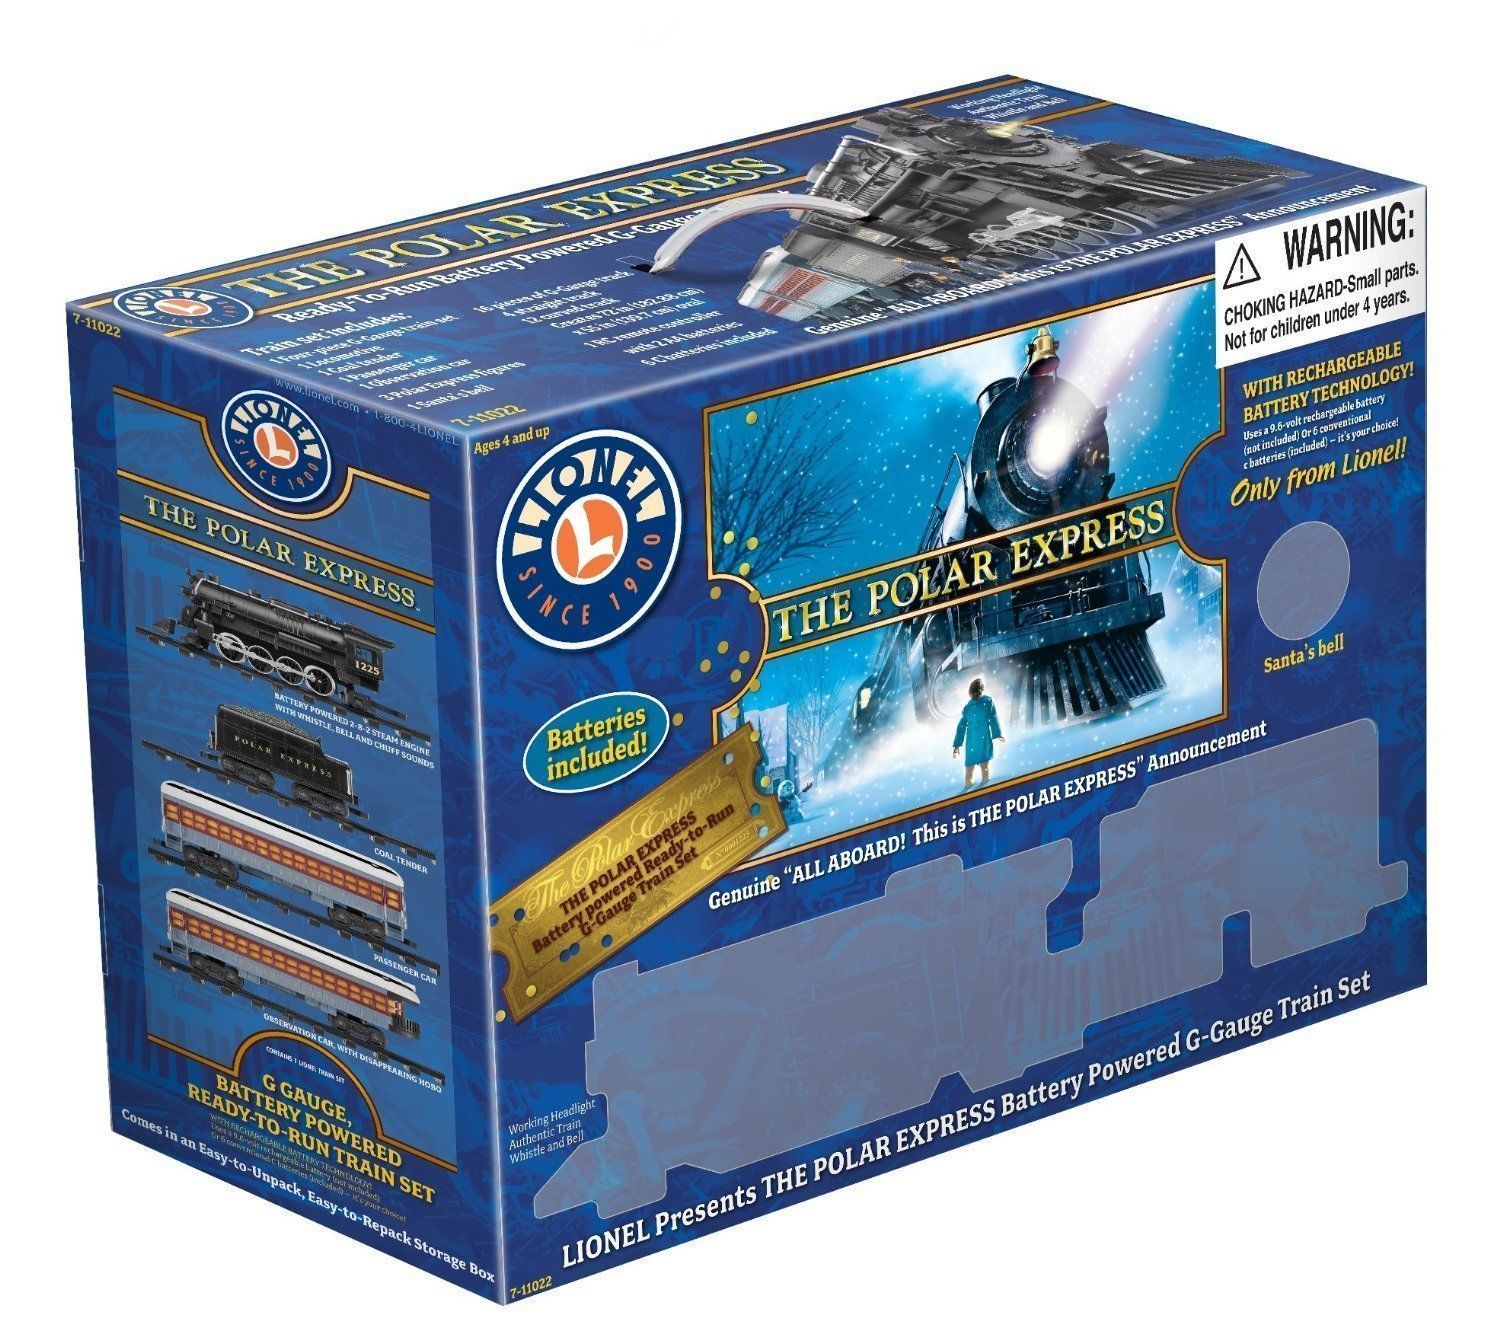 NEW Lionel Polar Express Train Set - G-Gauge